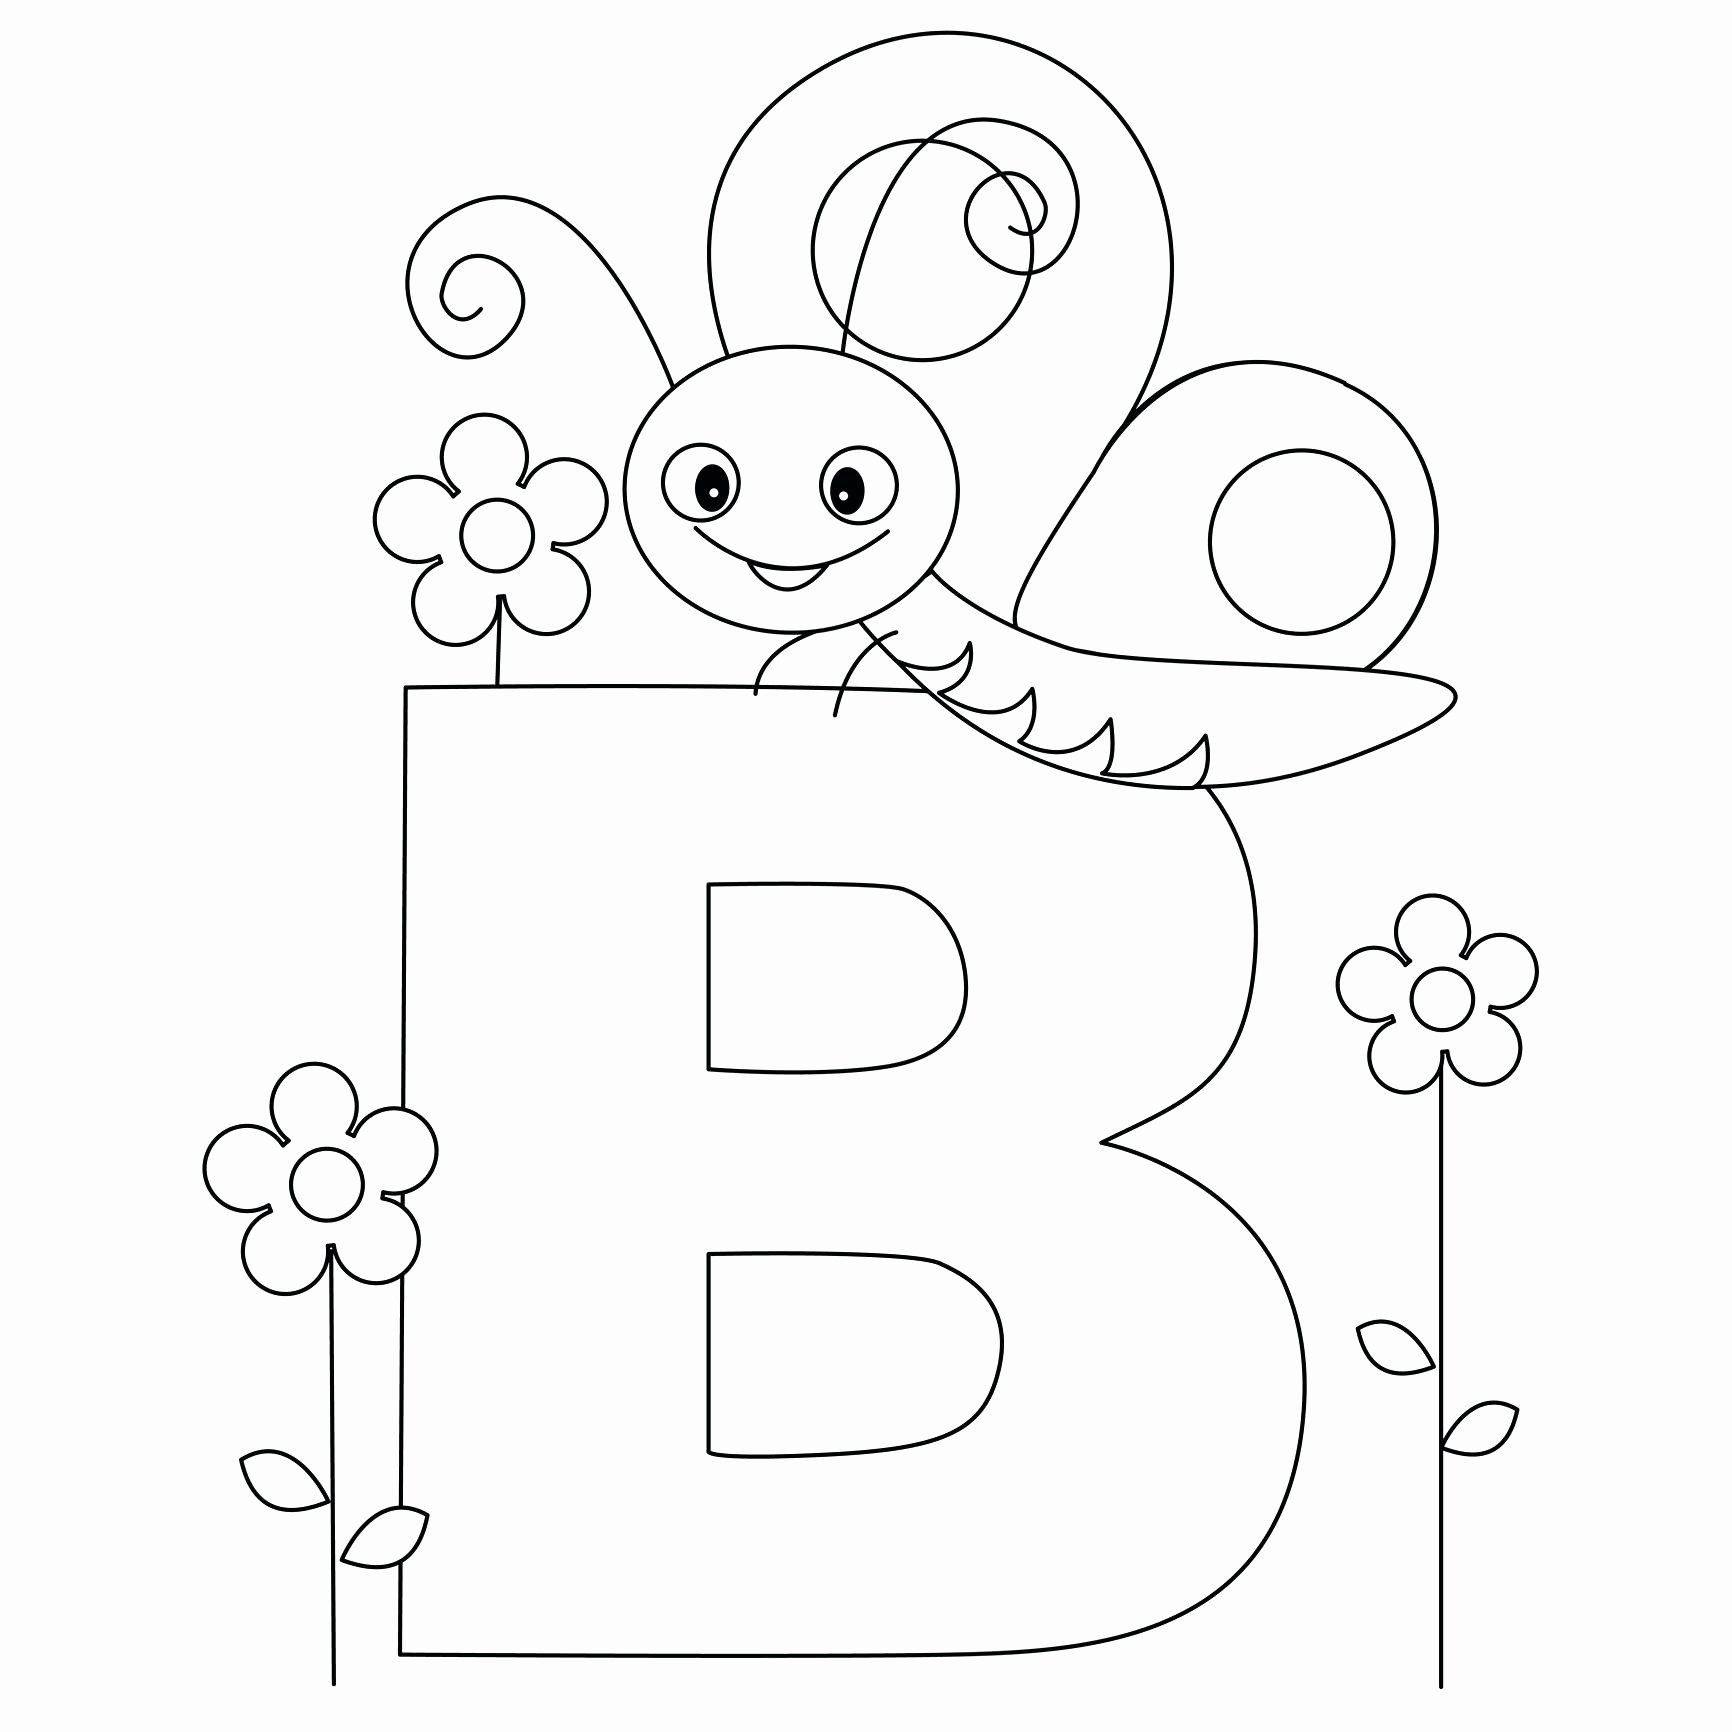 Printable Letter A Coloring Pages Lovely Letters Coloring Pages Printable Findpage In 2020 Letter B Coloring Pages Bug Coloring Pages Kindergarten Coloring Pages